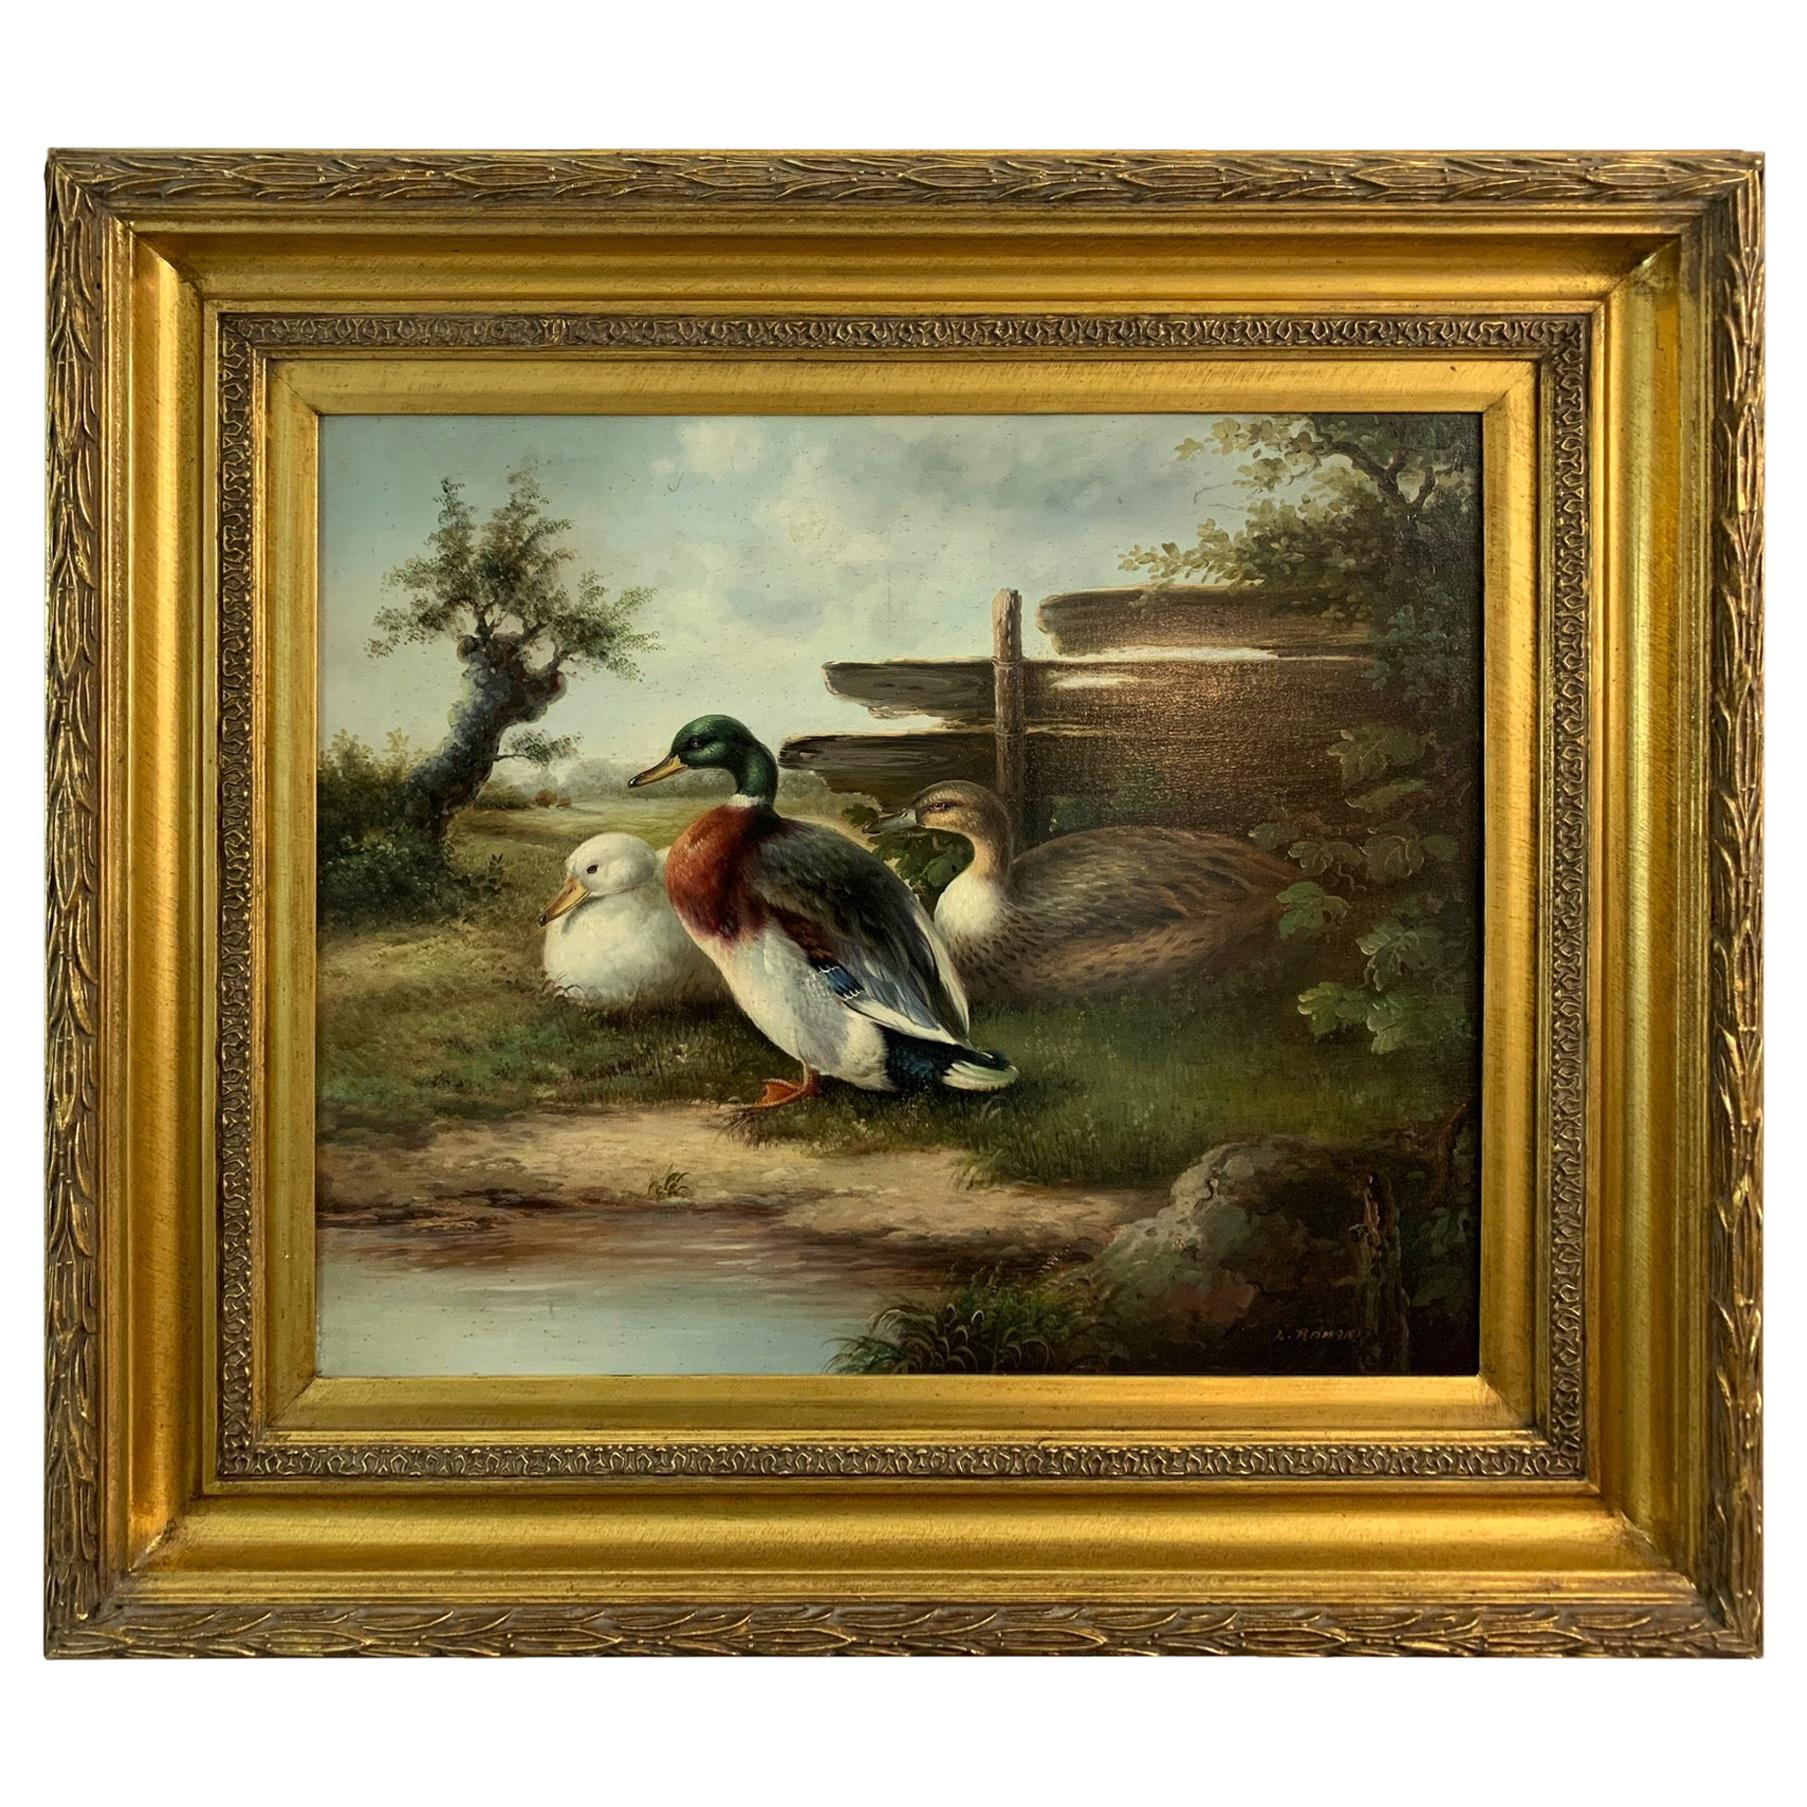 Beautiful Oil Painting of Ducks in Bucolic Landscape